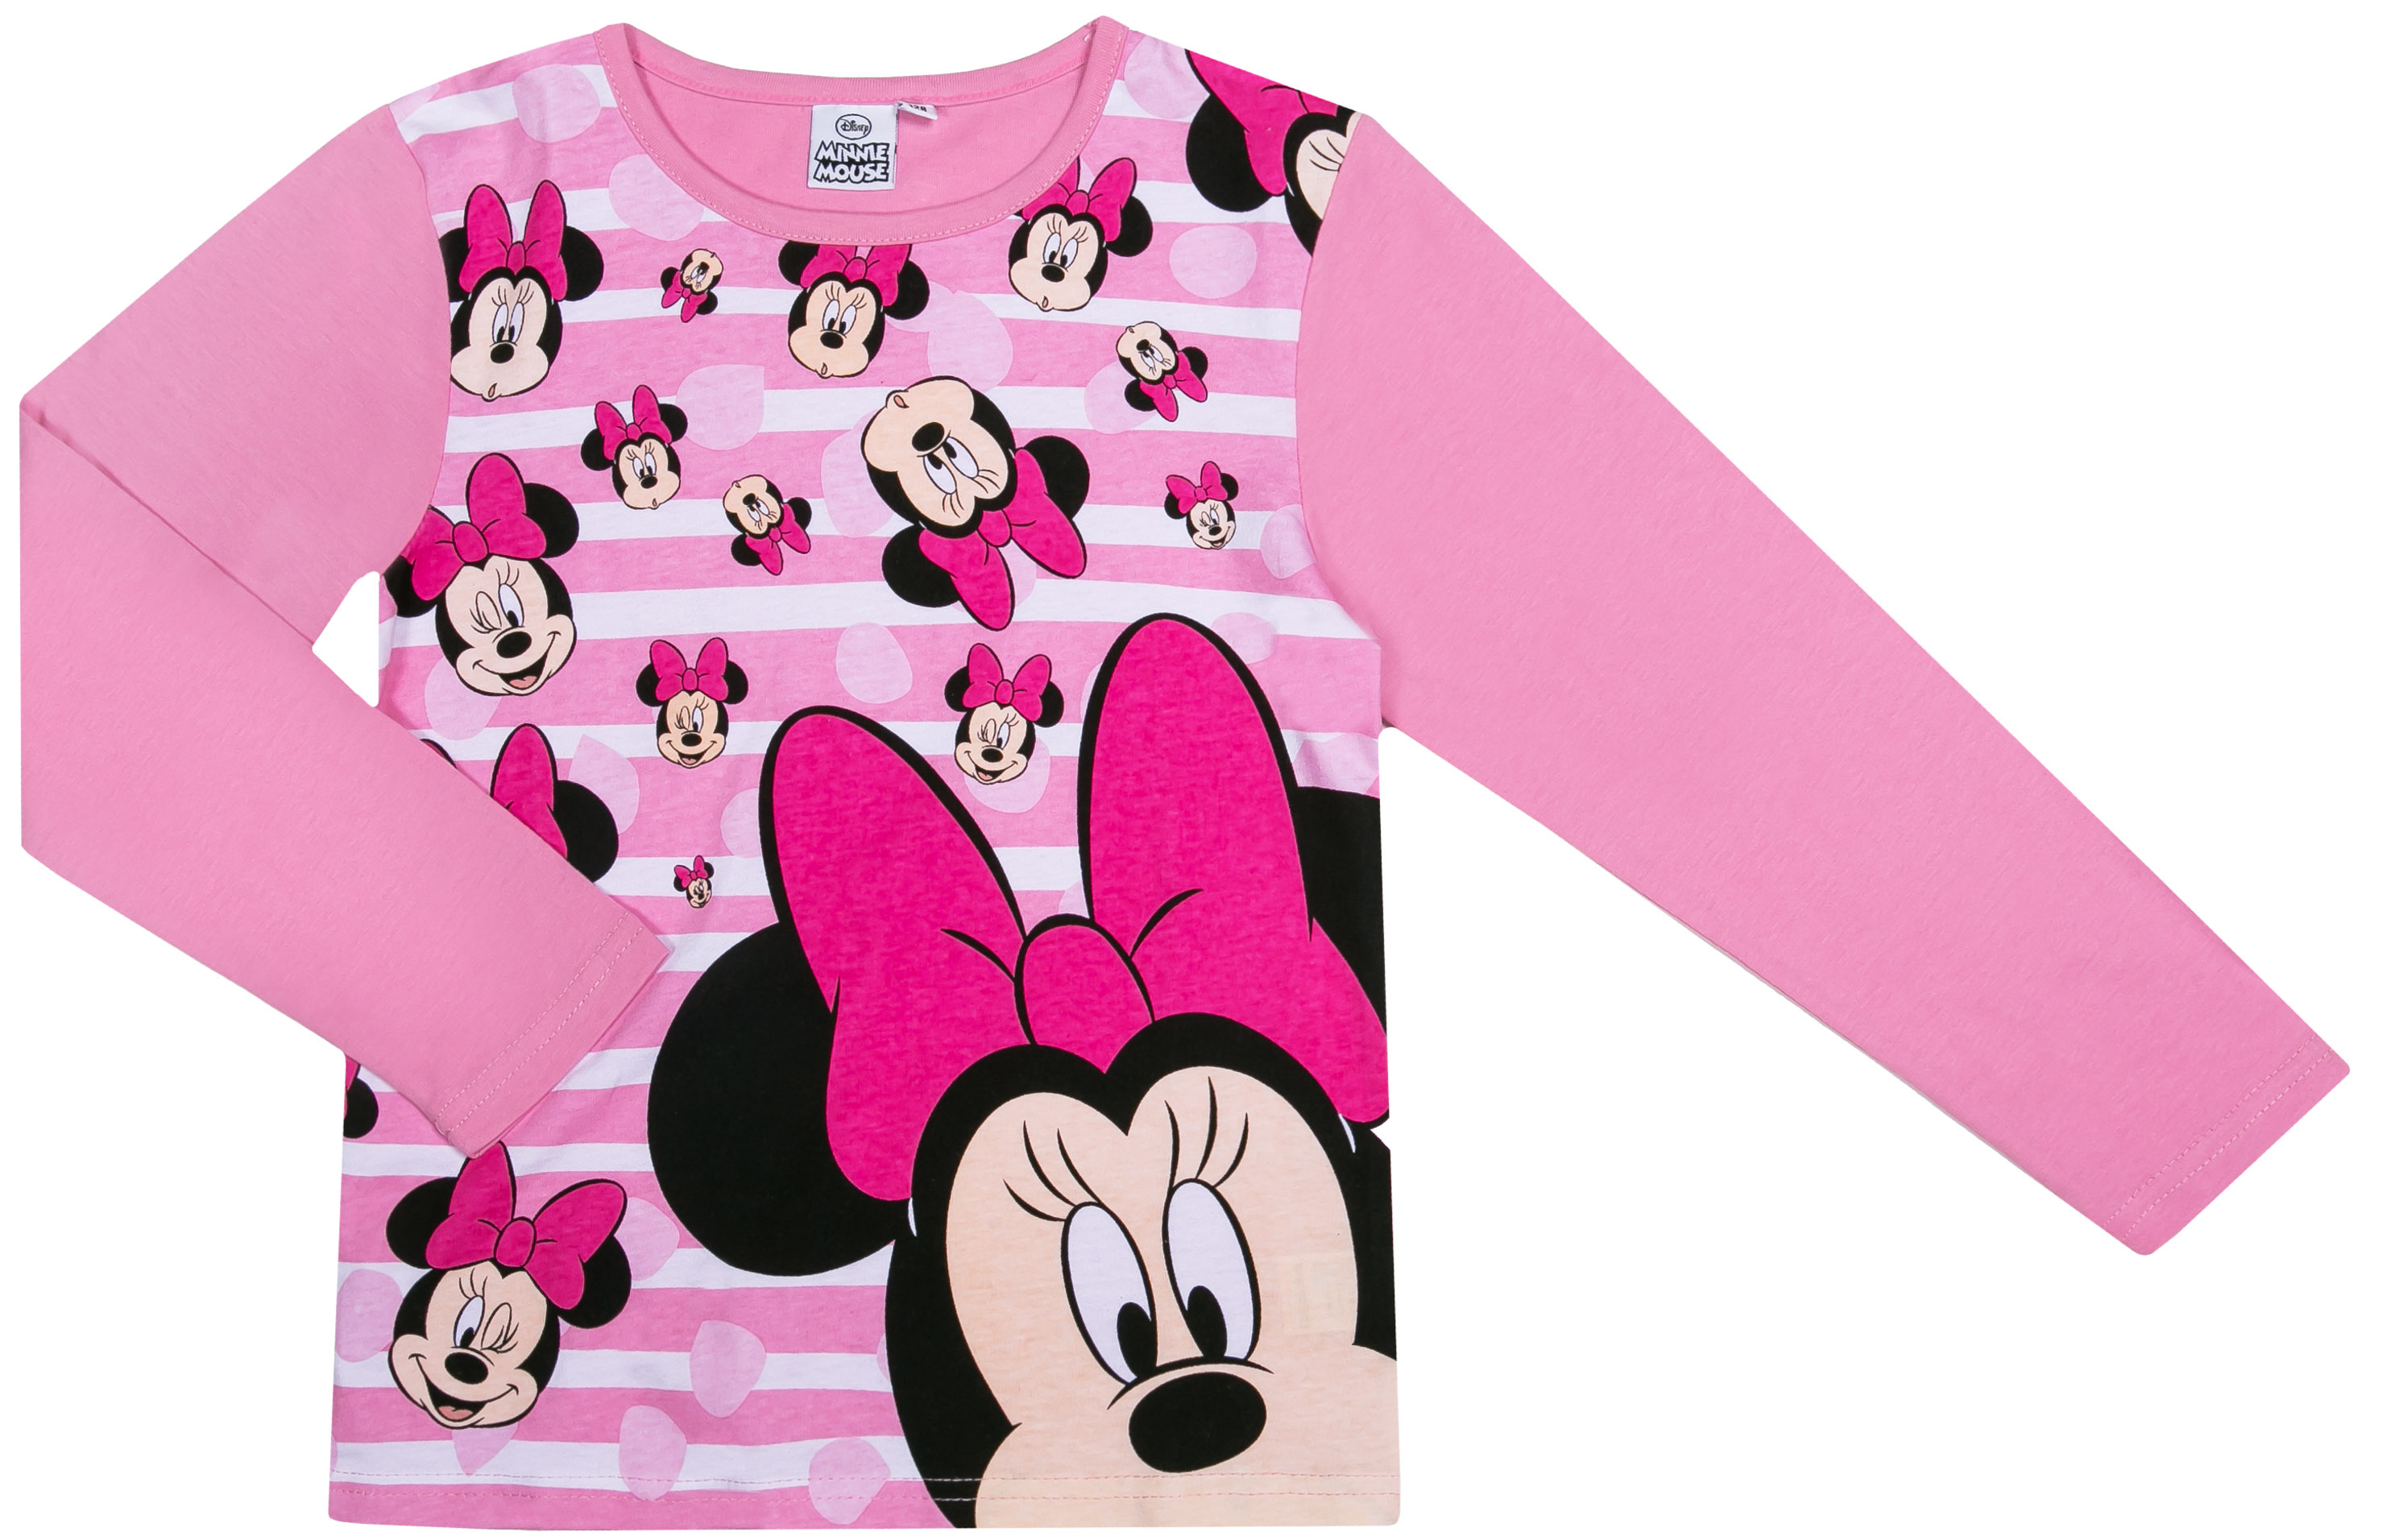 Пижамы Disney minnie Пижама для девочки Minnie Mouse, розовая